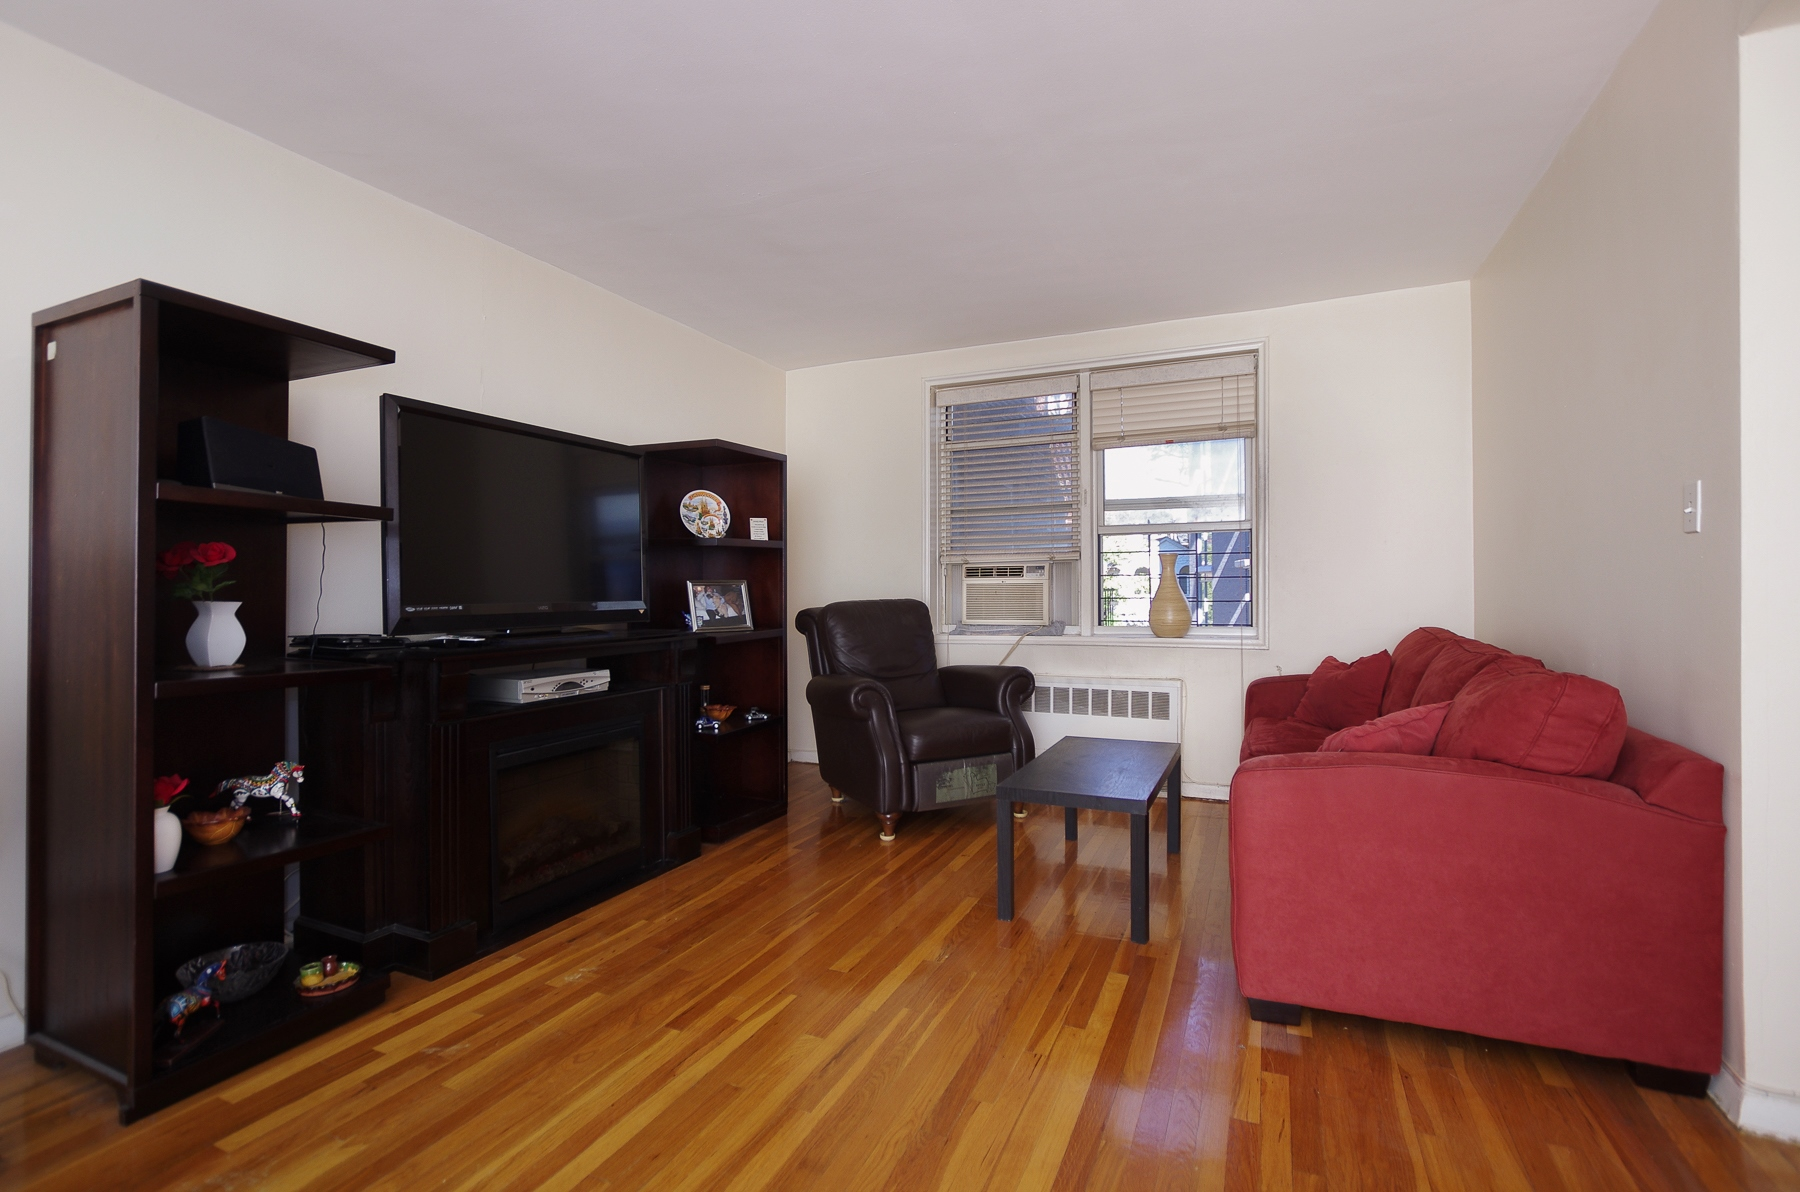 Co-op for Sale at Open House by Appointment. Call 917.414.6344. Large & Bright 1 BR 525 West 236 Street 5J Riverdale, New York, 10463 United States